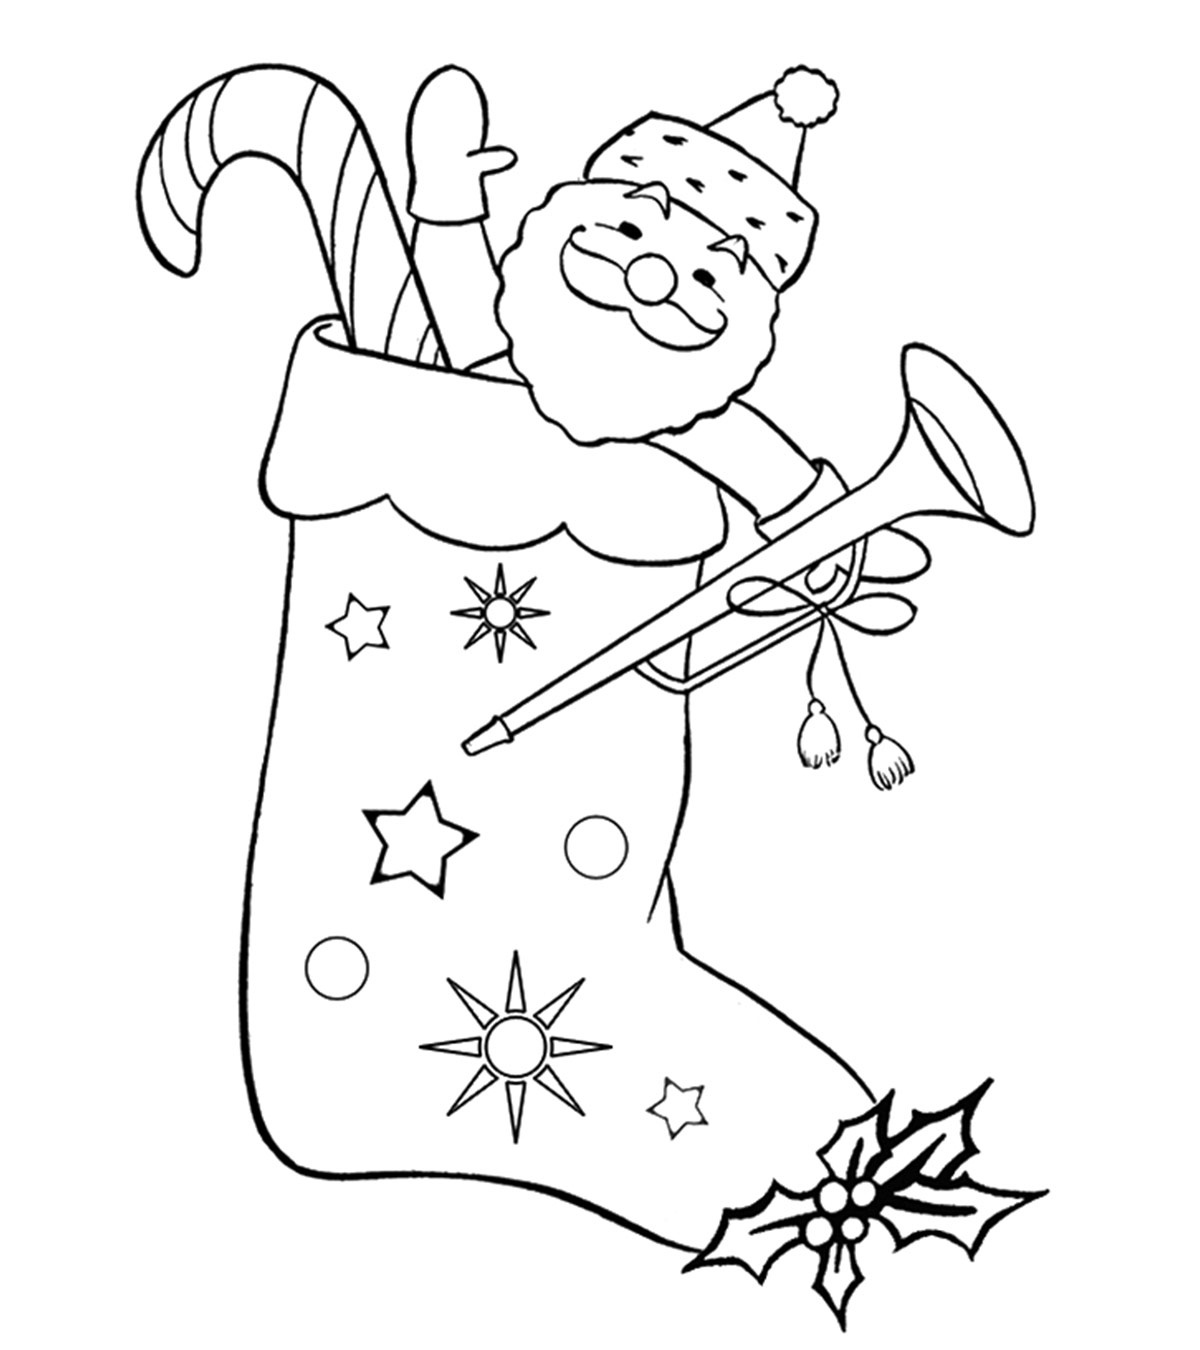 Top 25 Free Printable Christmas Stocking Coloring Pages Online - Free Printable Good Touch Bad Touch Coloring Book